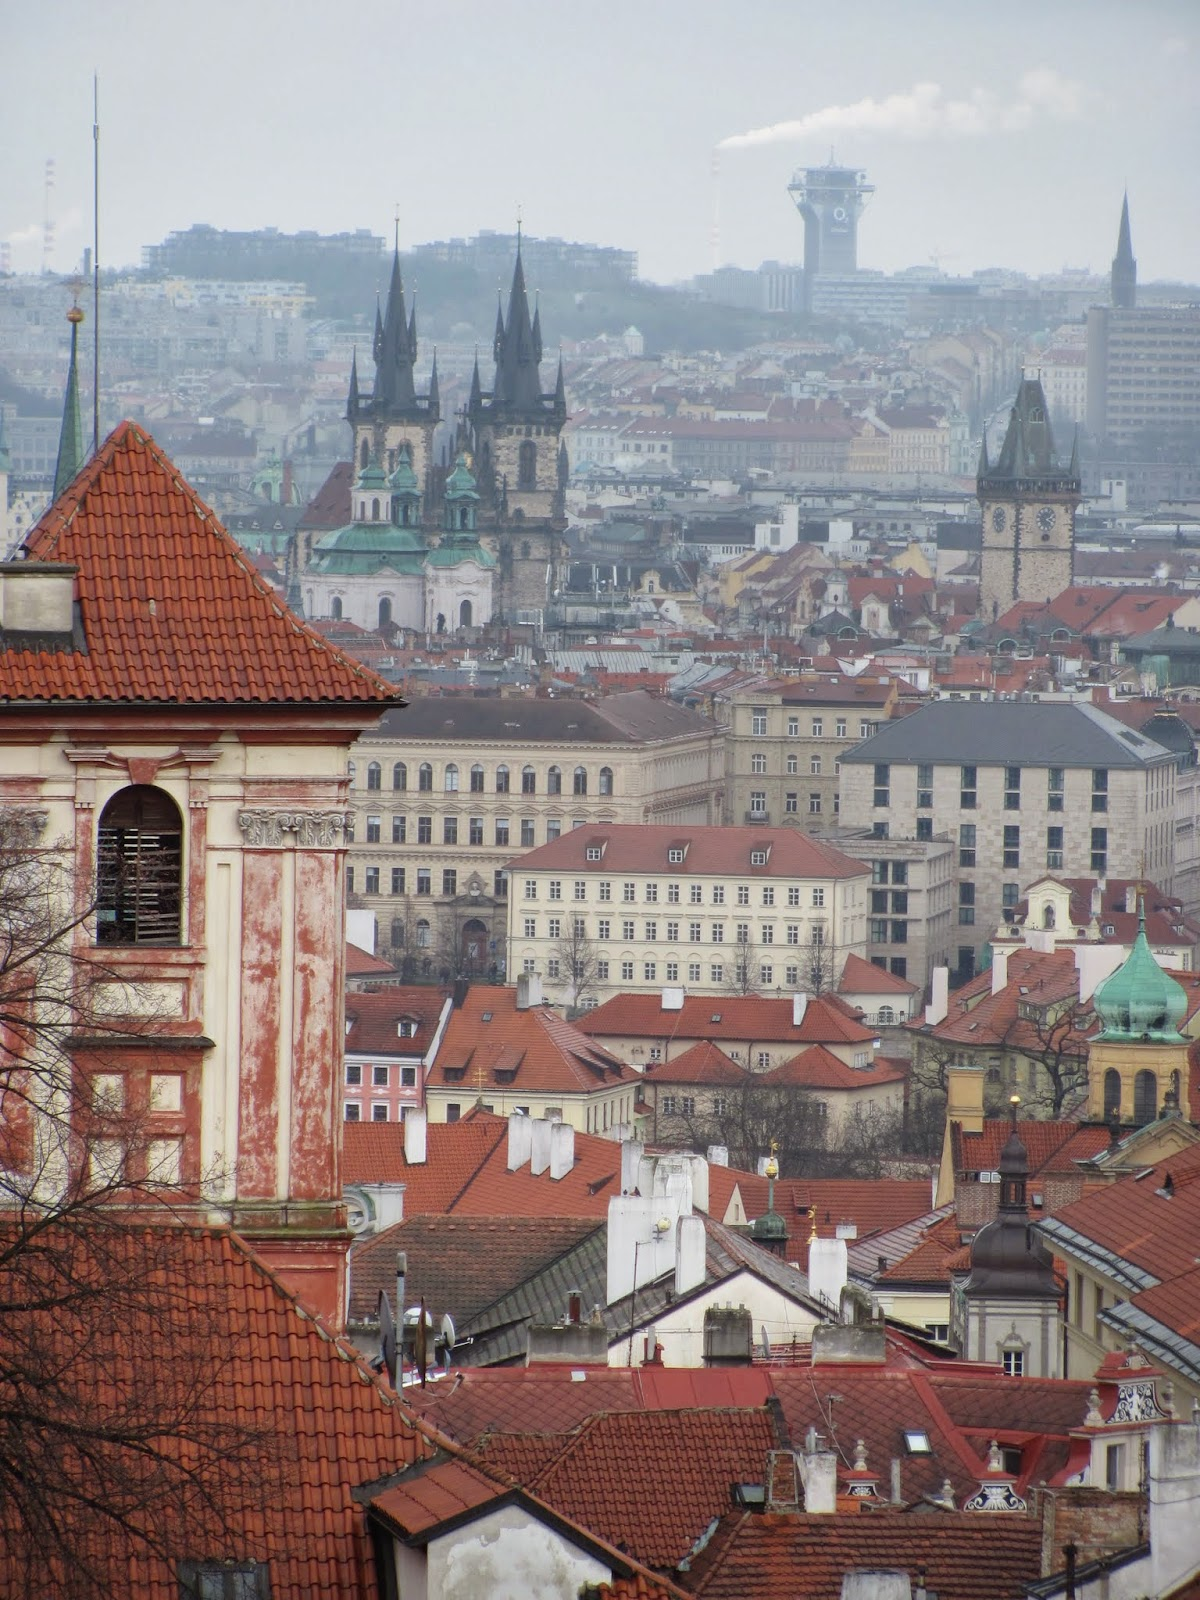 Tyn Church and More Red Roofs in Prague